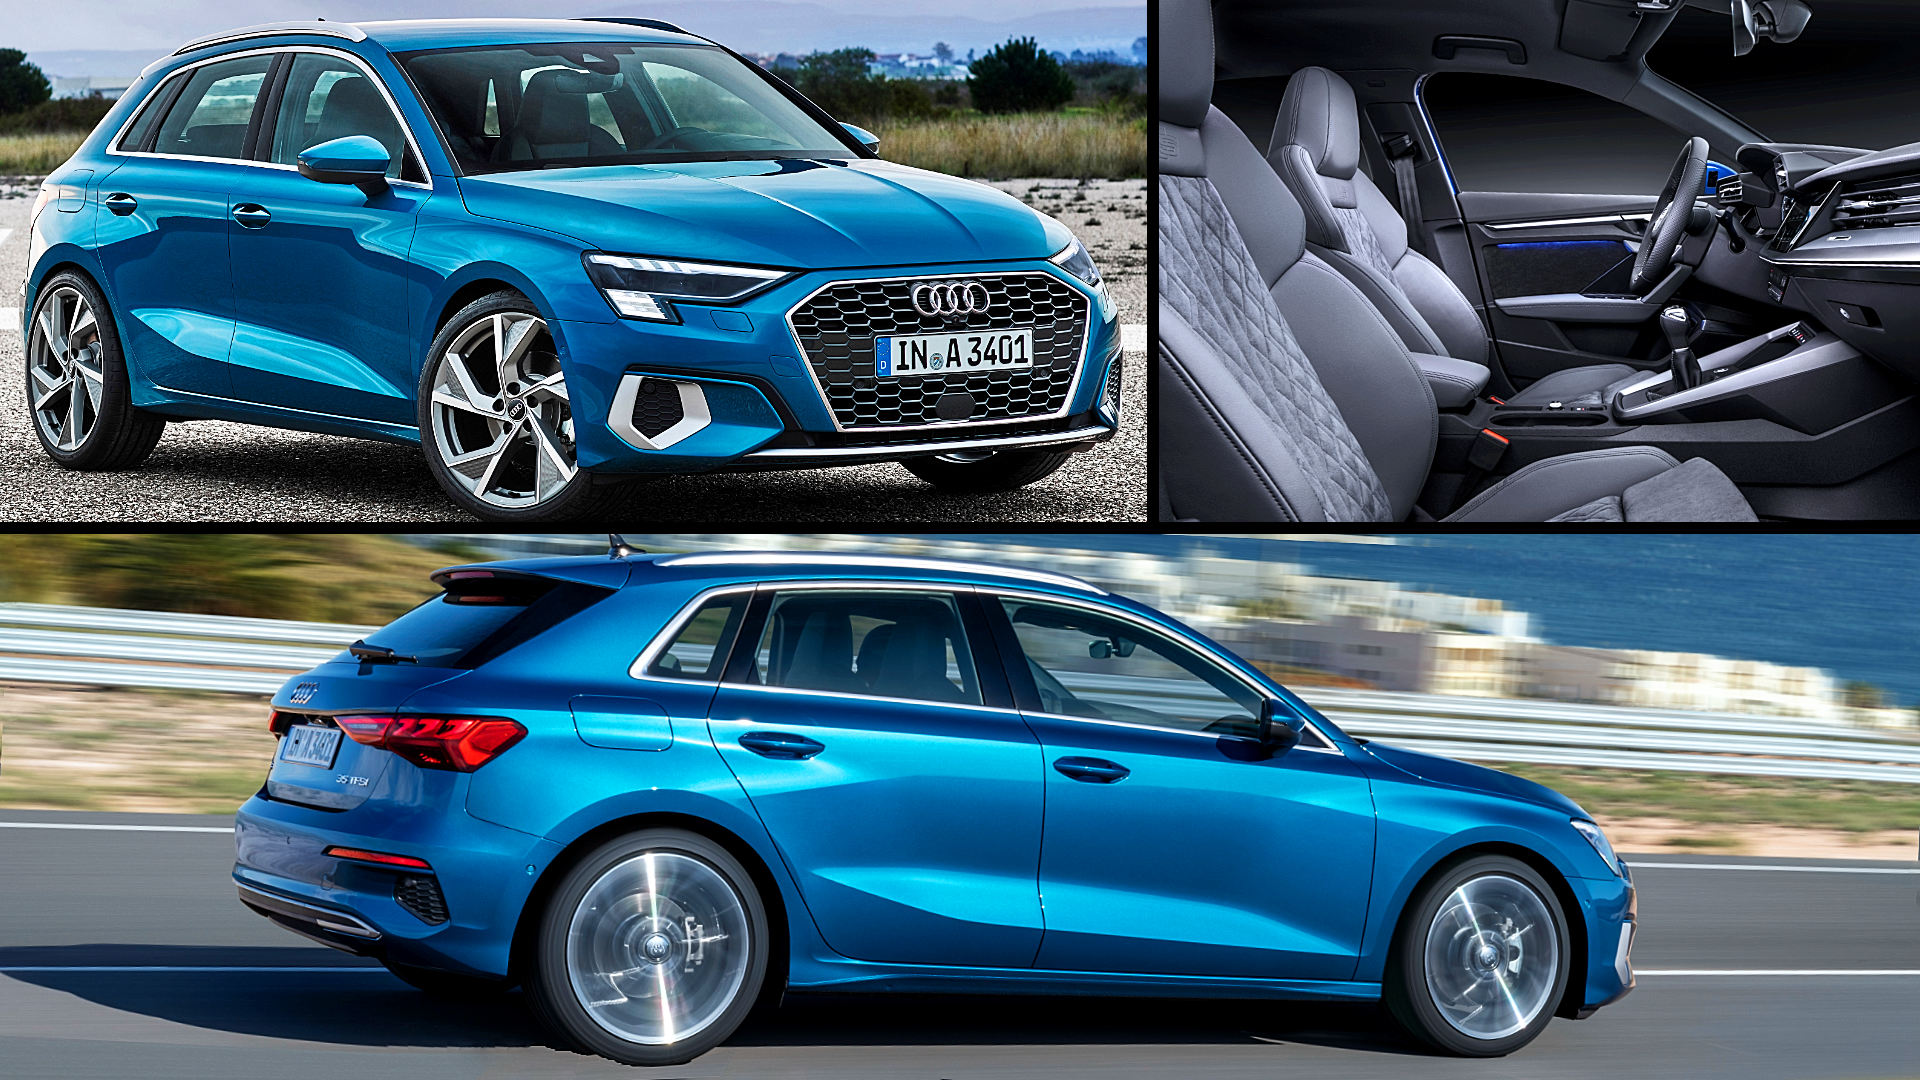 2021 Audi A3 Sportback Blue Colors Pictures